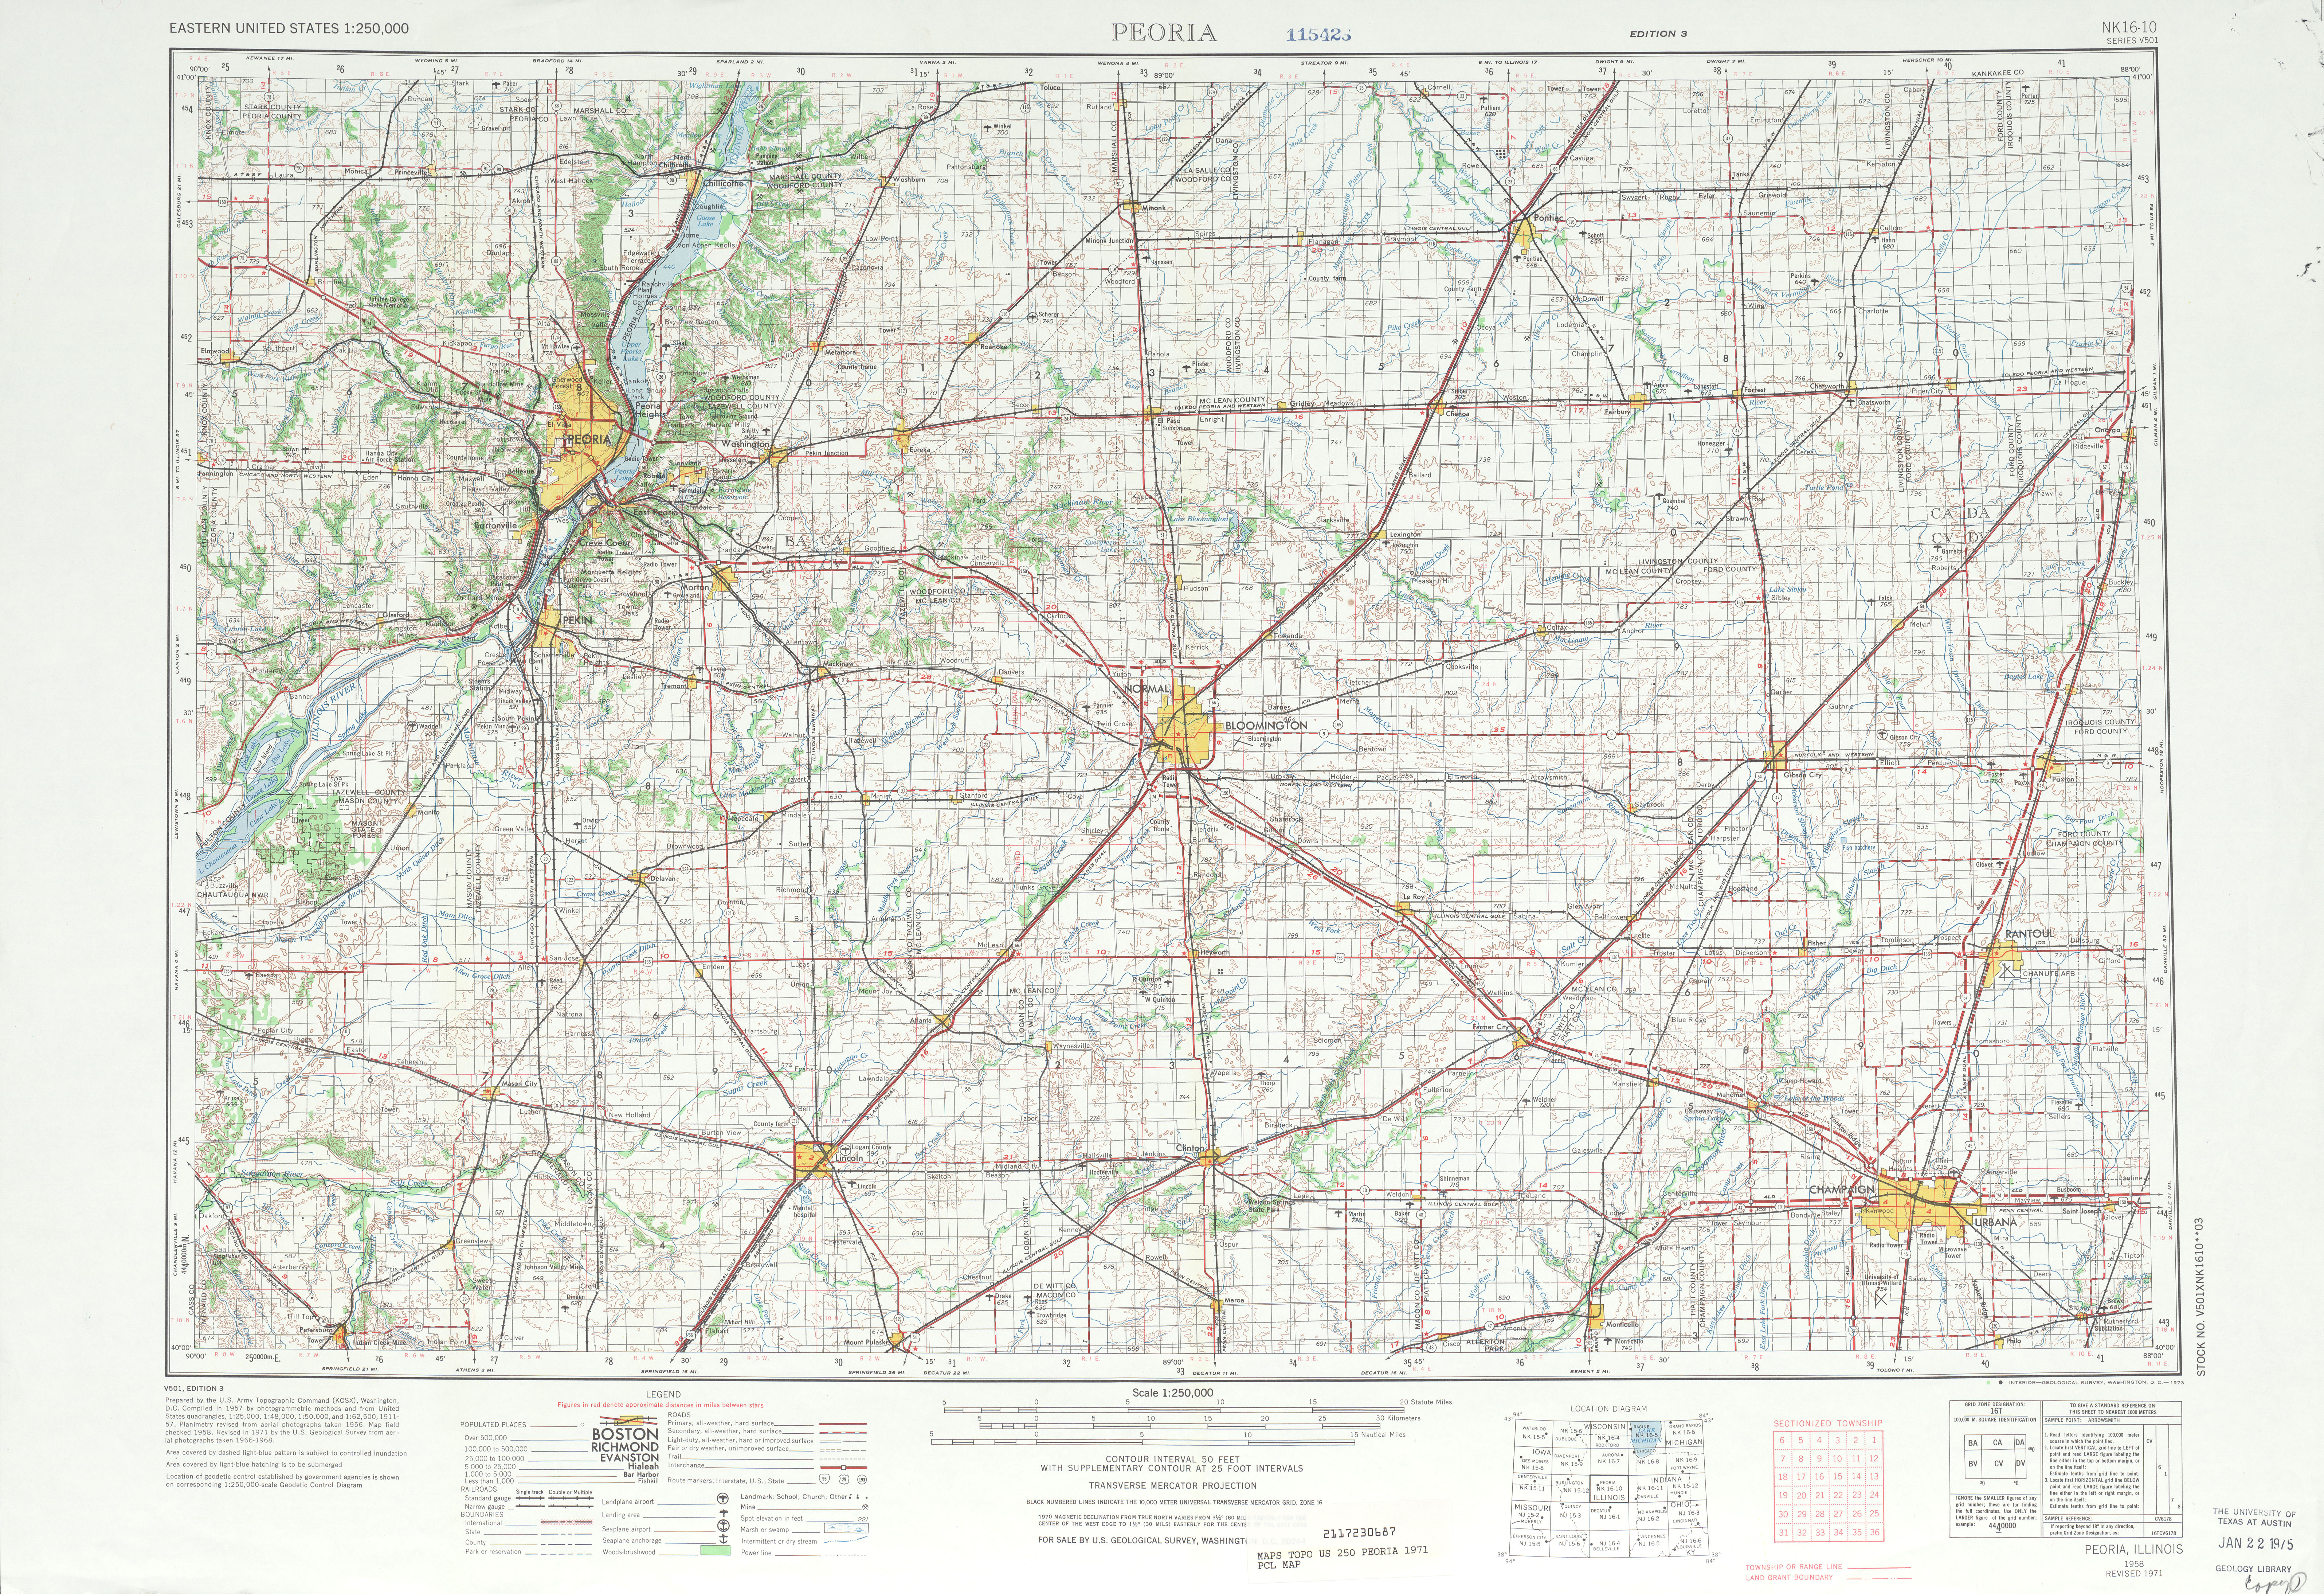 Peoria Topographic Map Sheet, United States 1971